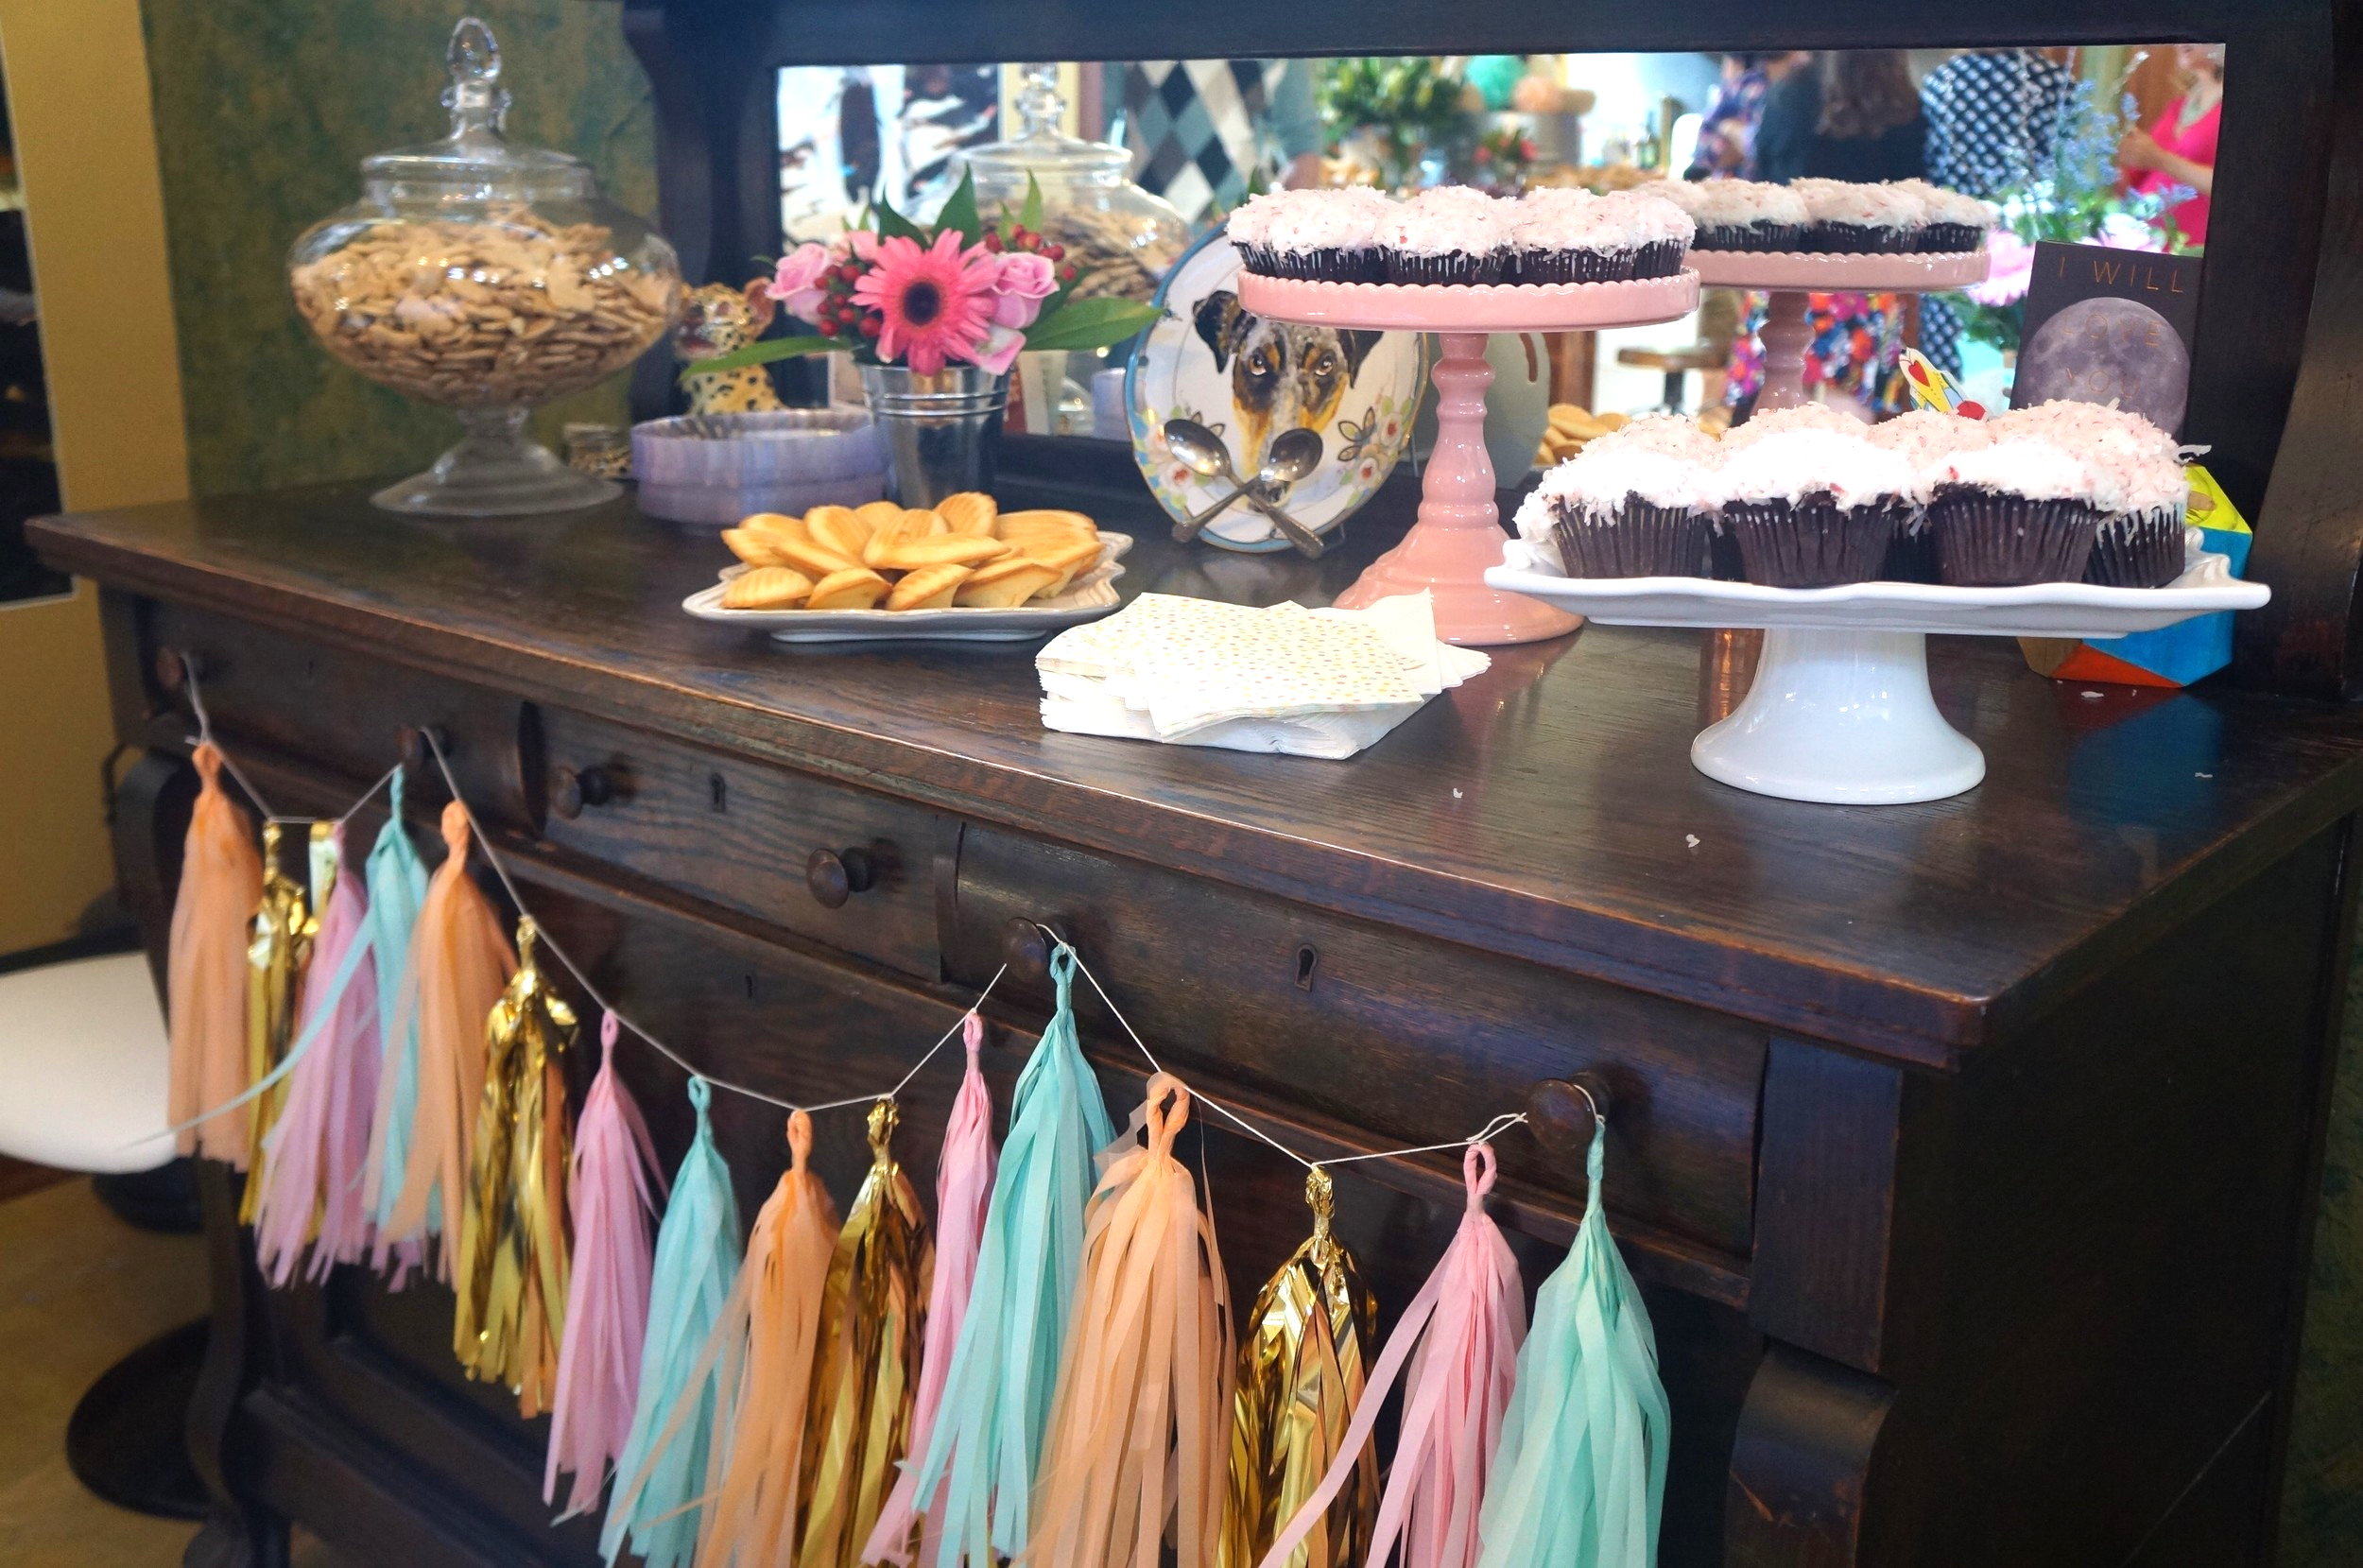 Dessert table with pink coconut cupcakes and madeleines